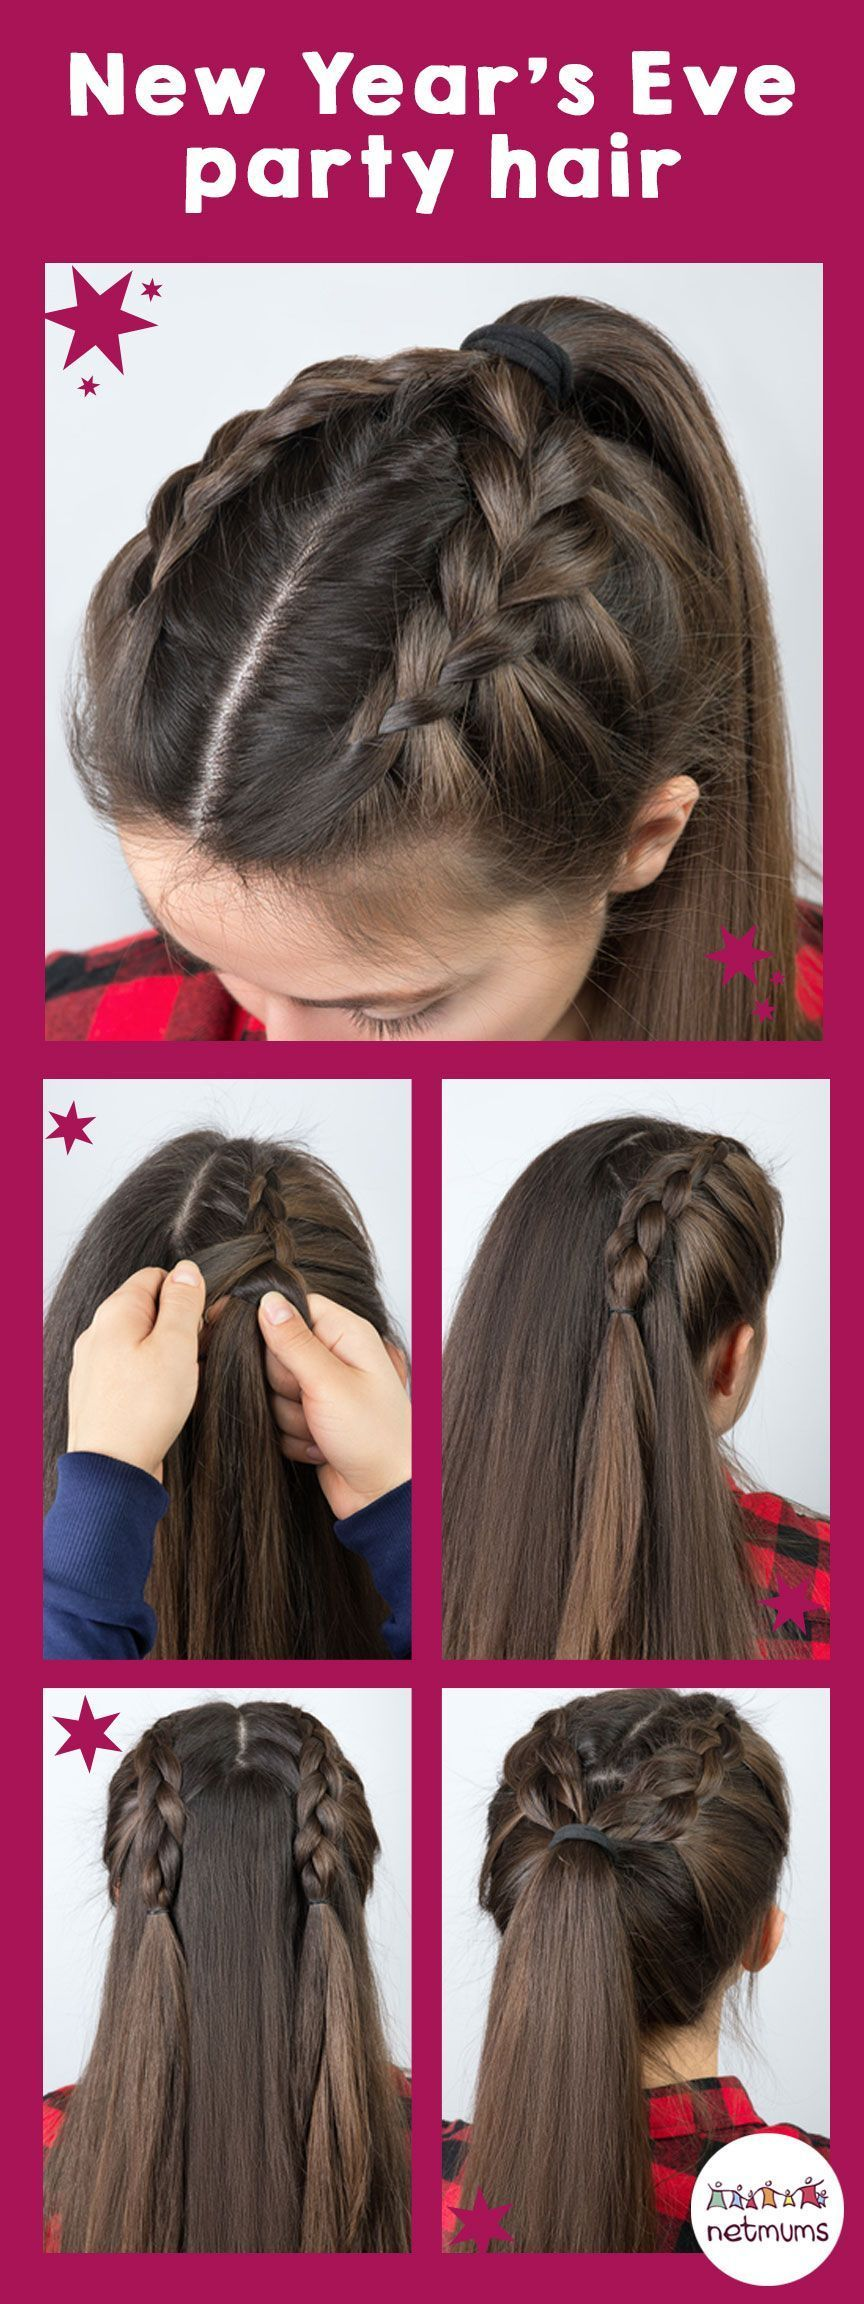 New Year S Eve Hair Ideas If You Re Looking For Hair Ideas For New Year S Eve Why Not Try This Easy Tutorial New Year S Eve Hair Hair Hacks Long Hair Styles